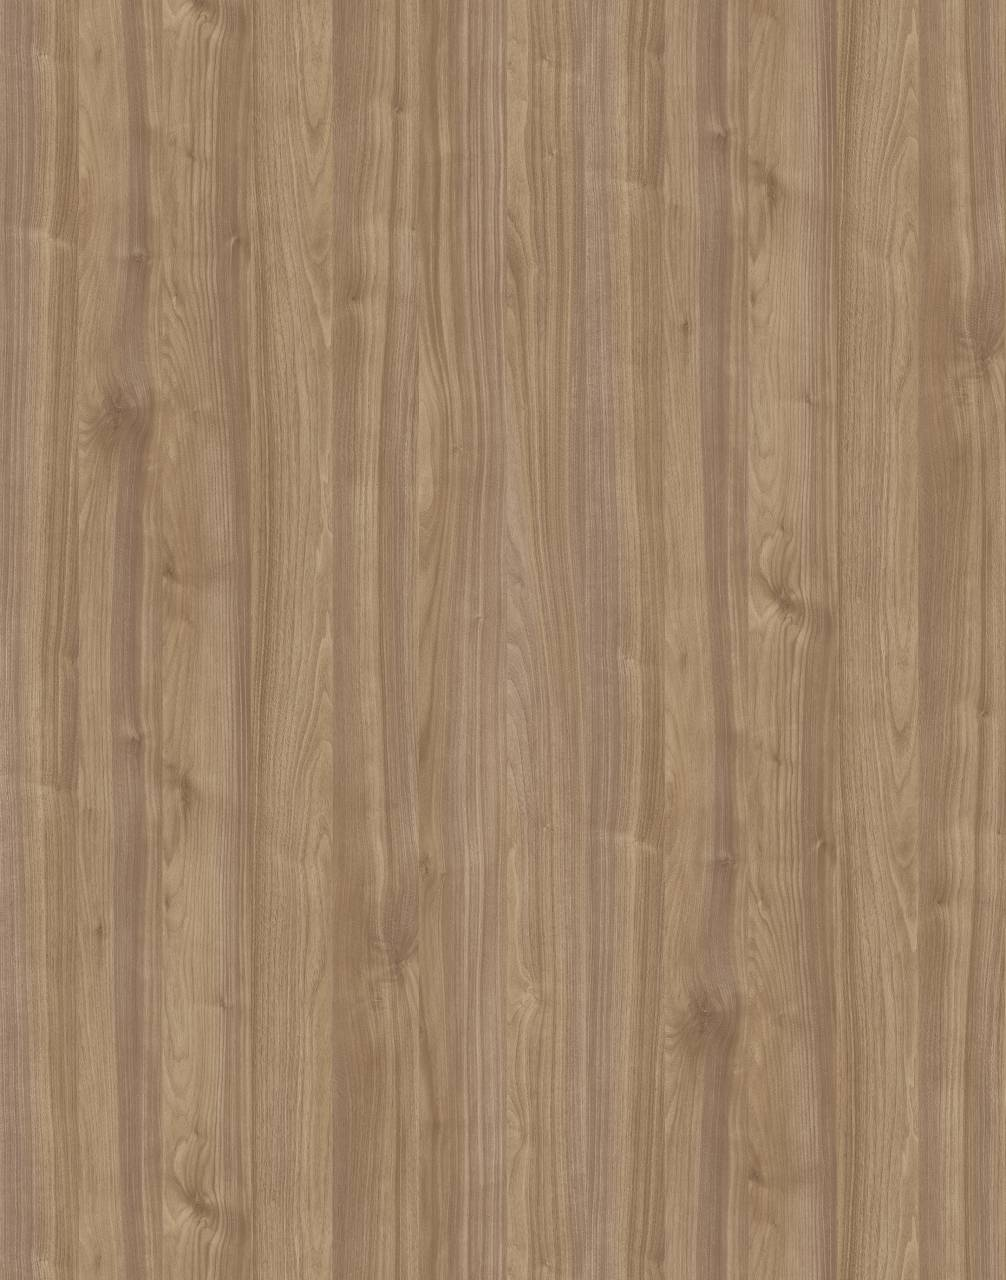 K008 Light Select Walnut (мостра ЛПДЧ)